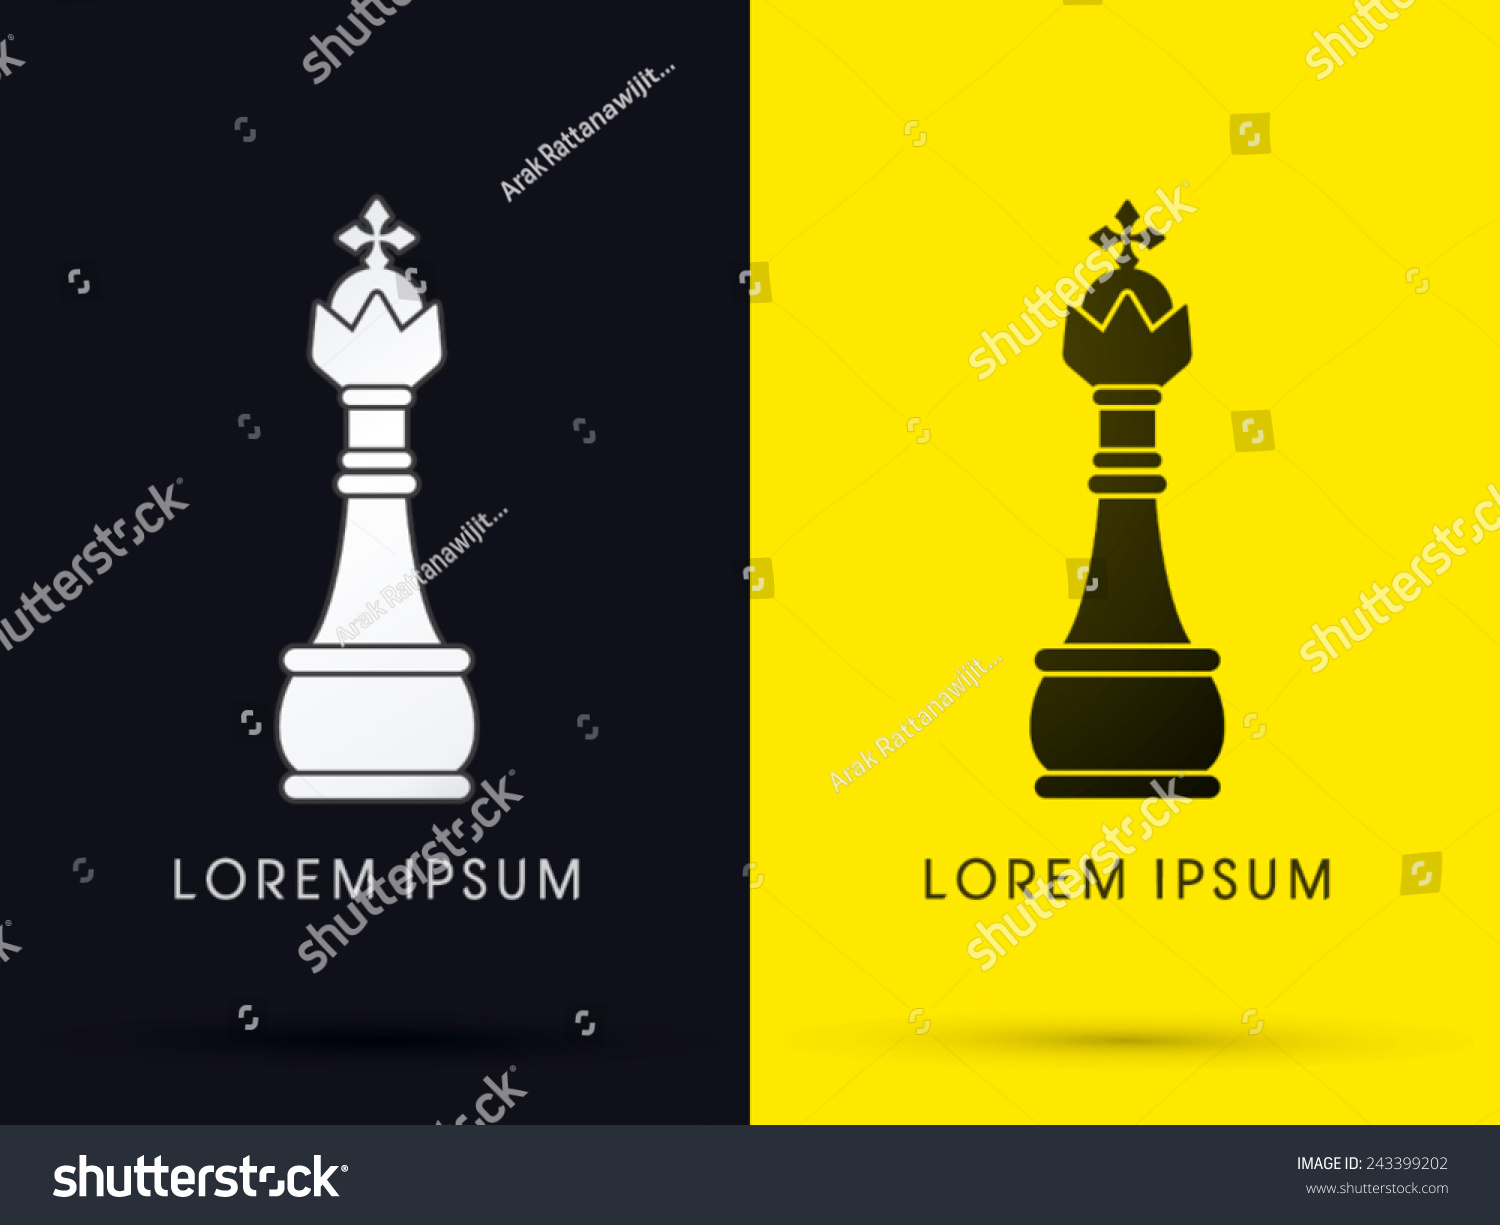 King chess logo symbol icon graphic stock vector 243399202 king chess logo symbol icon graphic vector biocorpaavc Gallery